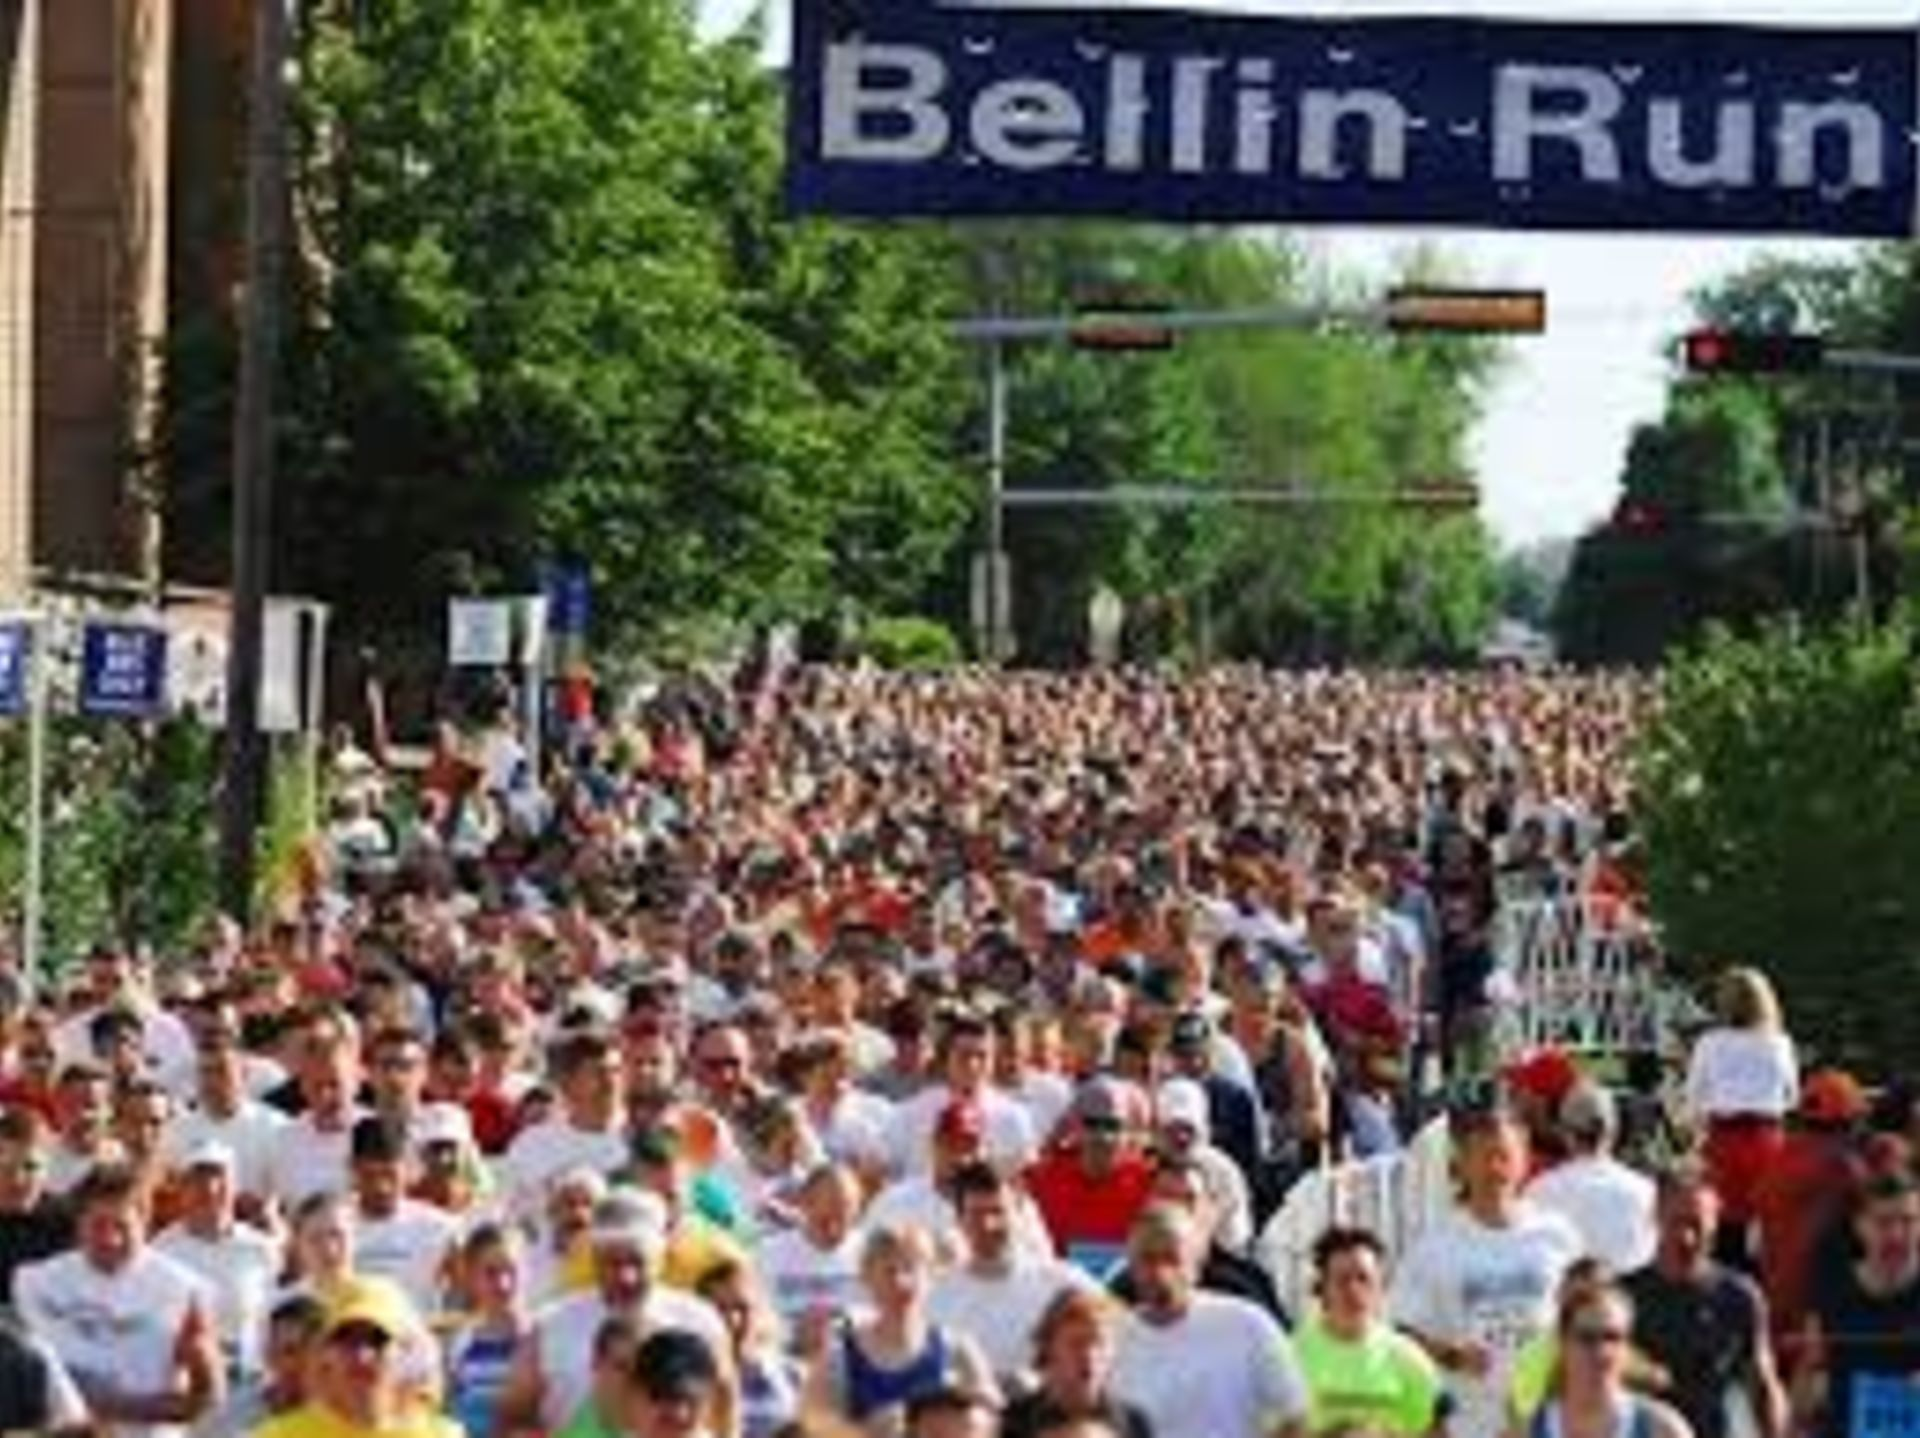 The Bellin Run – It's Almost Here!